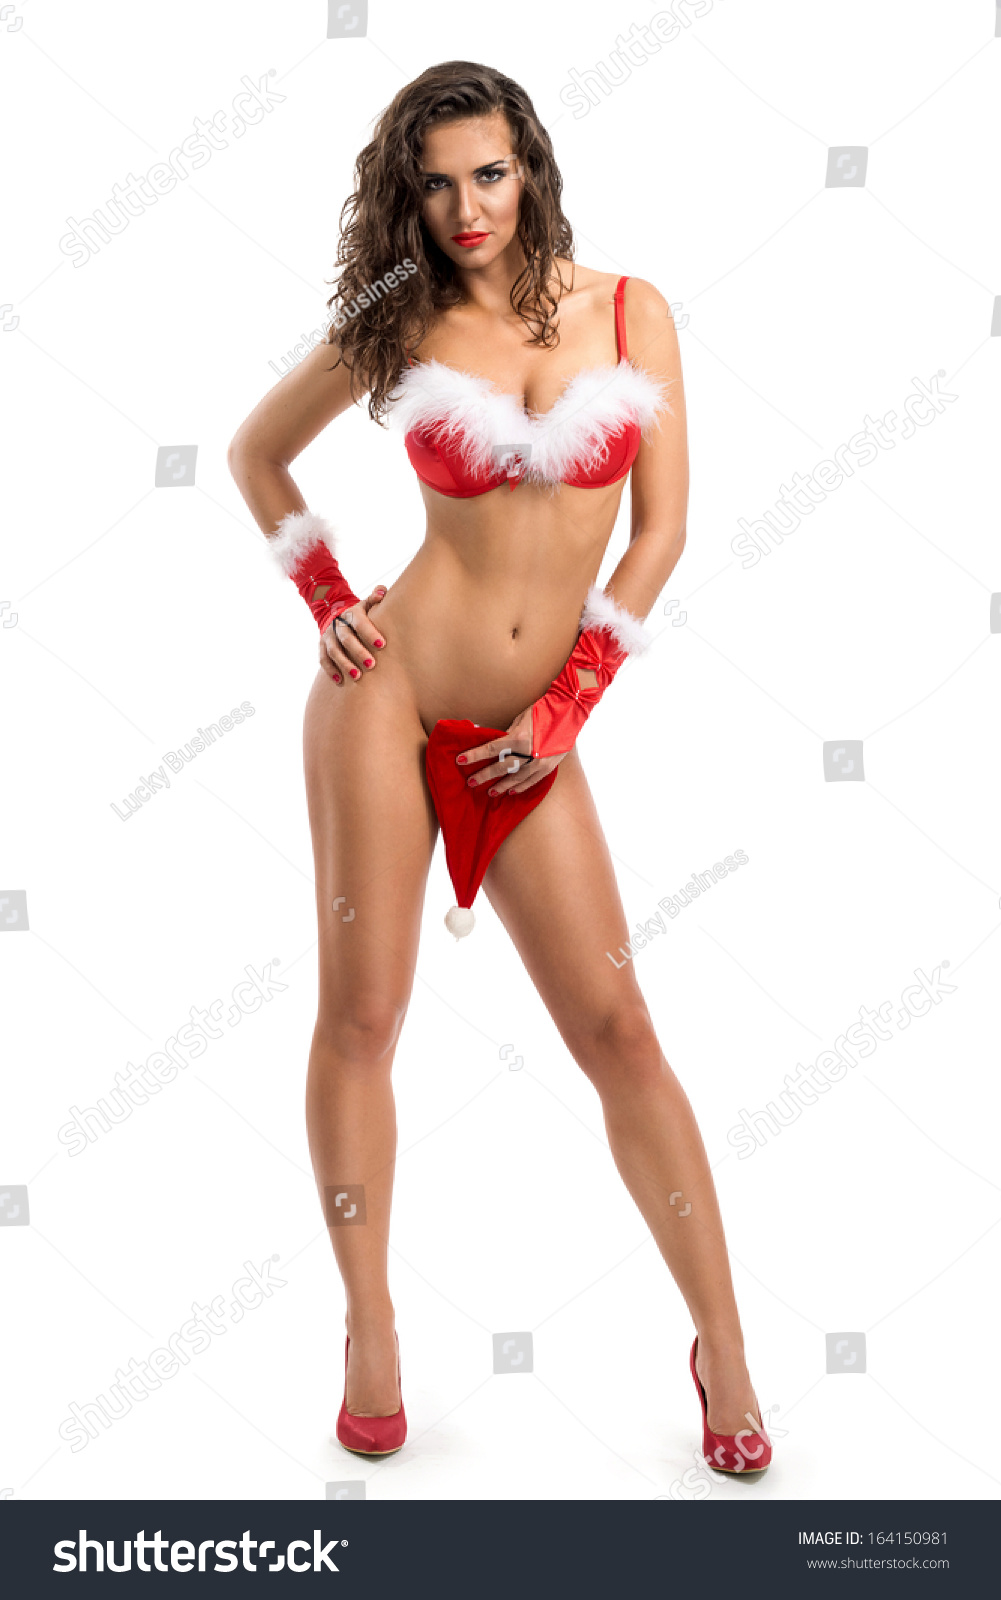 Nude santa claus sexual images